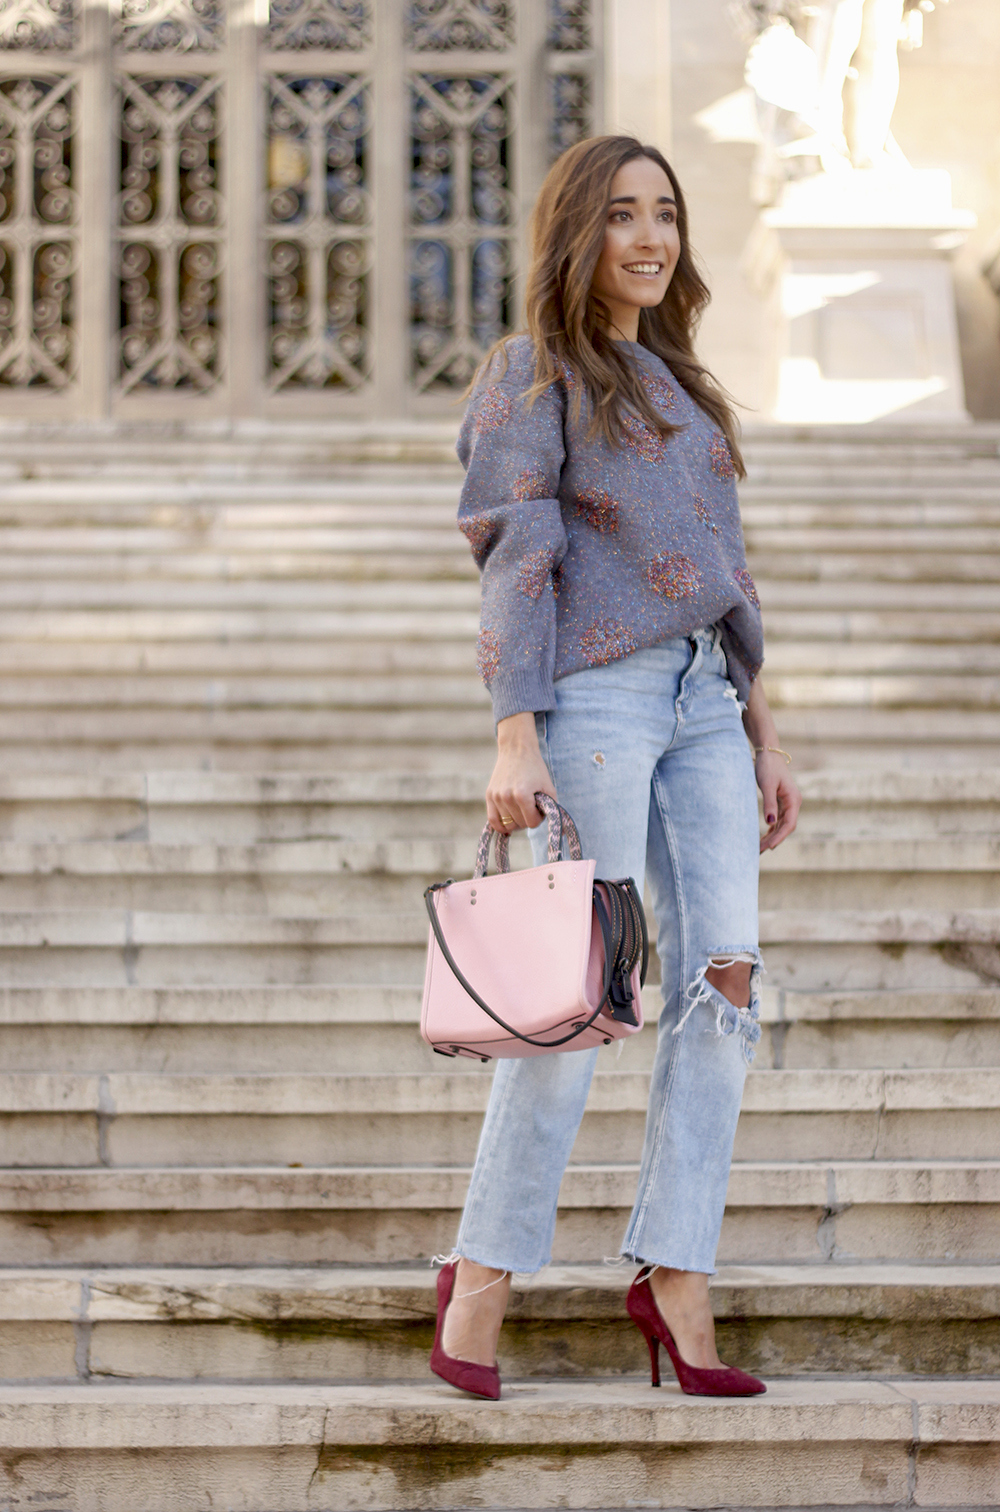 GRAY CHRISTMAS JERSEY ripped jeans pink coaach bag burgundy heels street style fall outfit 20186773